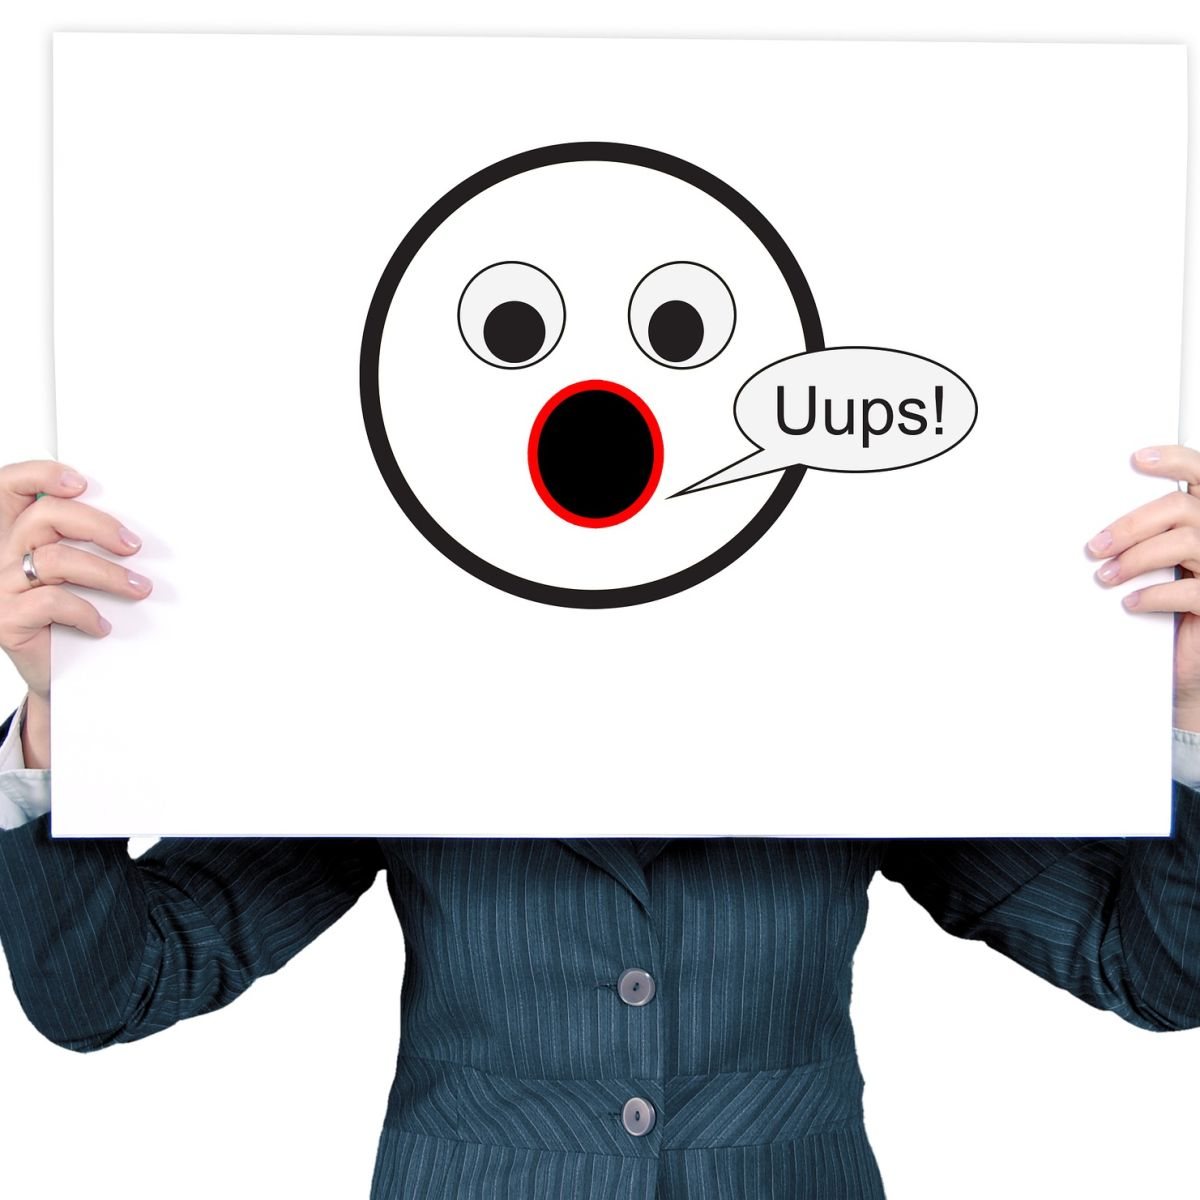 Uups, excuse me, I beg your pardon, woman, holding, paper, smiley